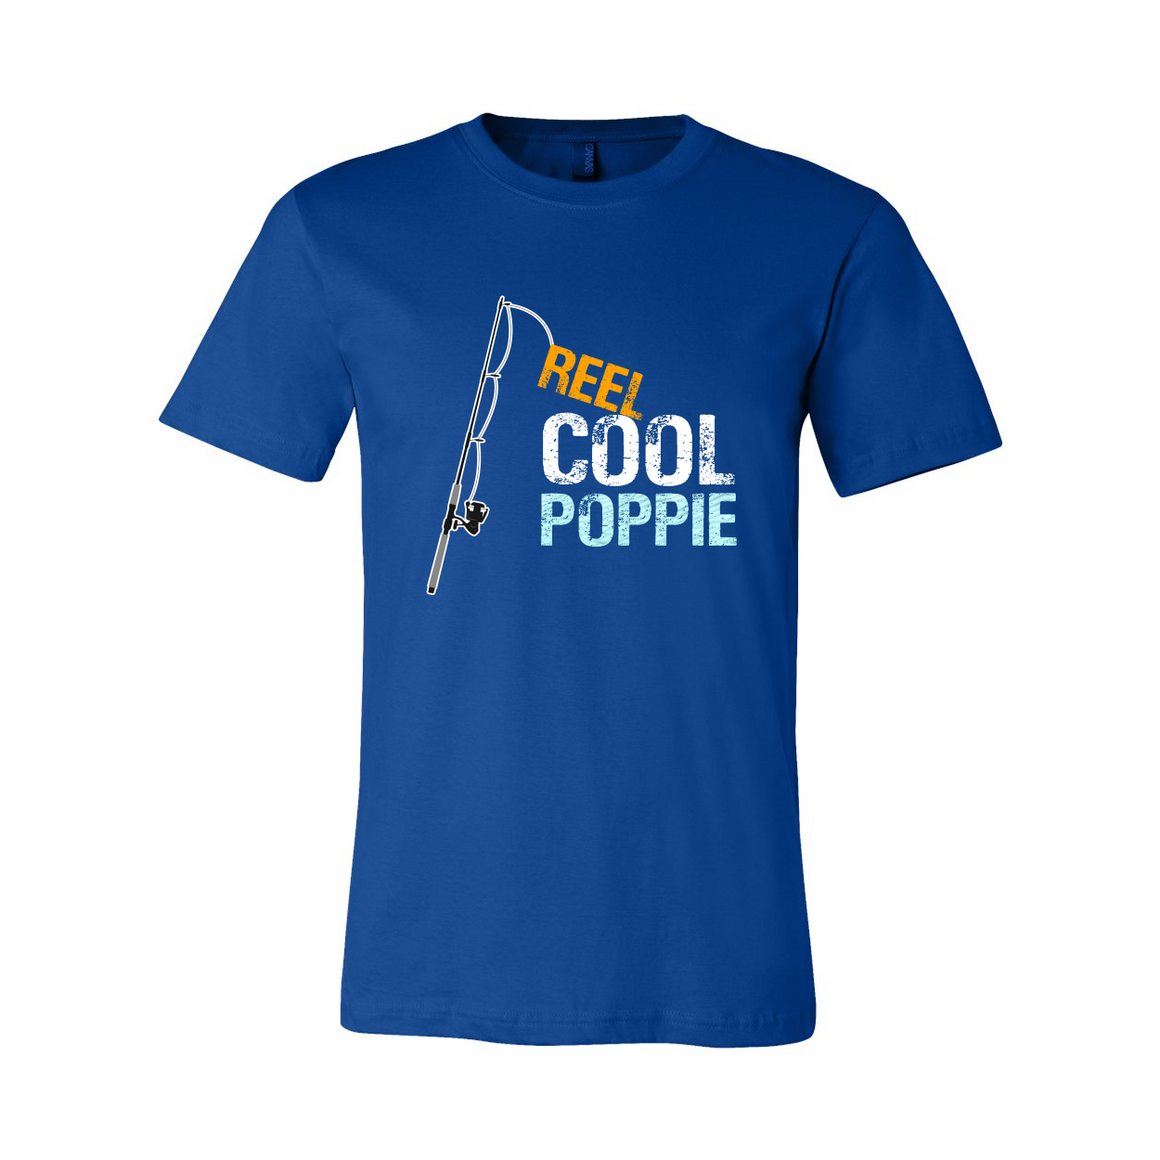 Reel Cool Poppie Grandpa Grandfather Tshirt